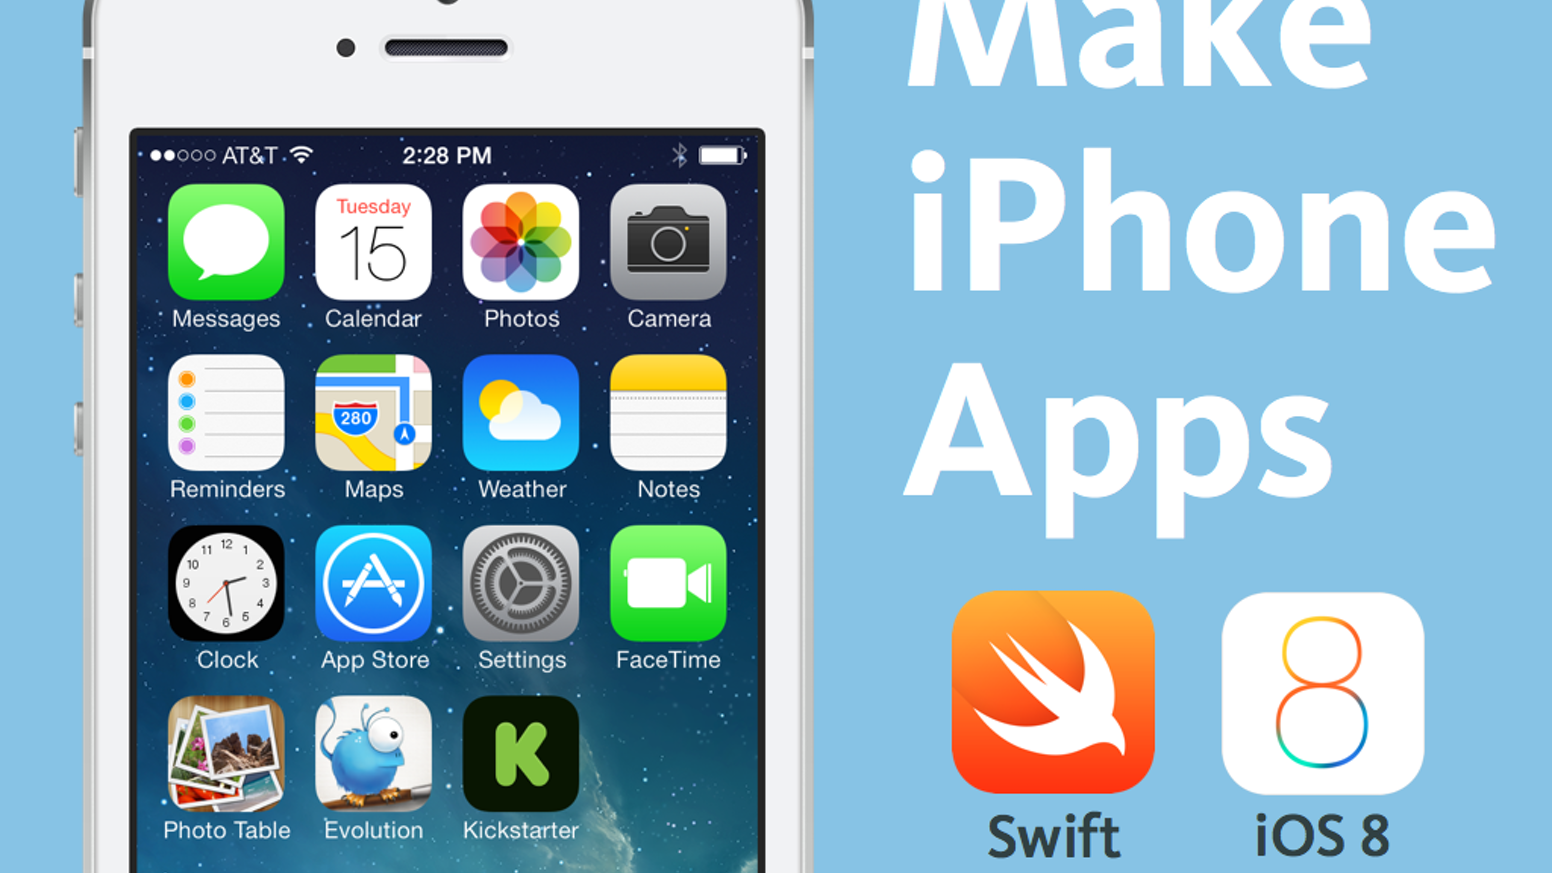 The complete iOS bundle for aspiring iPhone app developers who want to sell apps on the App Store and start their iPhone app business.